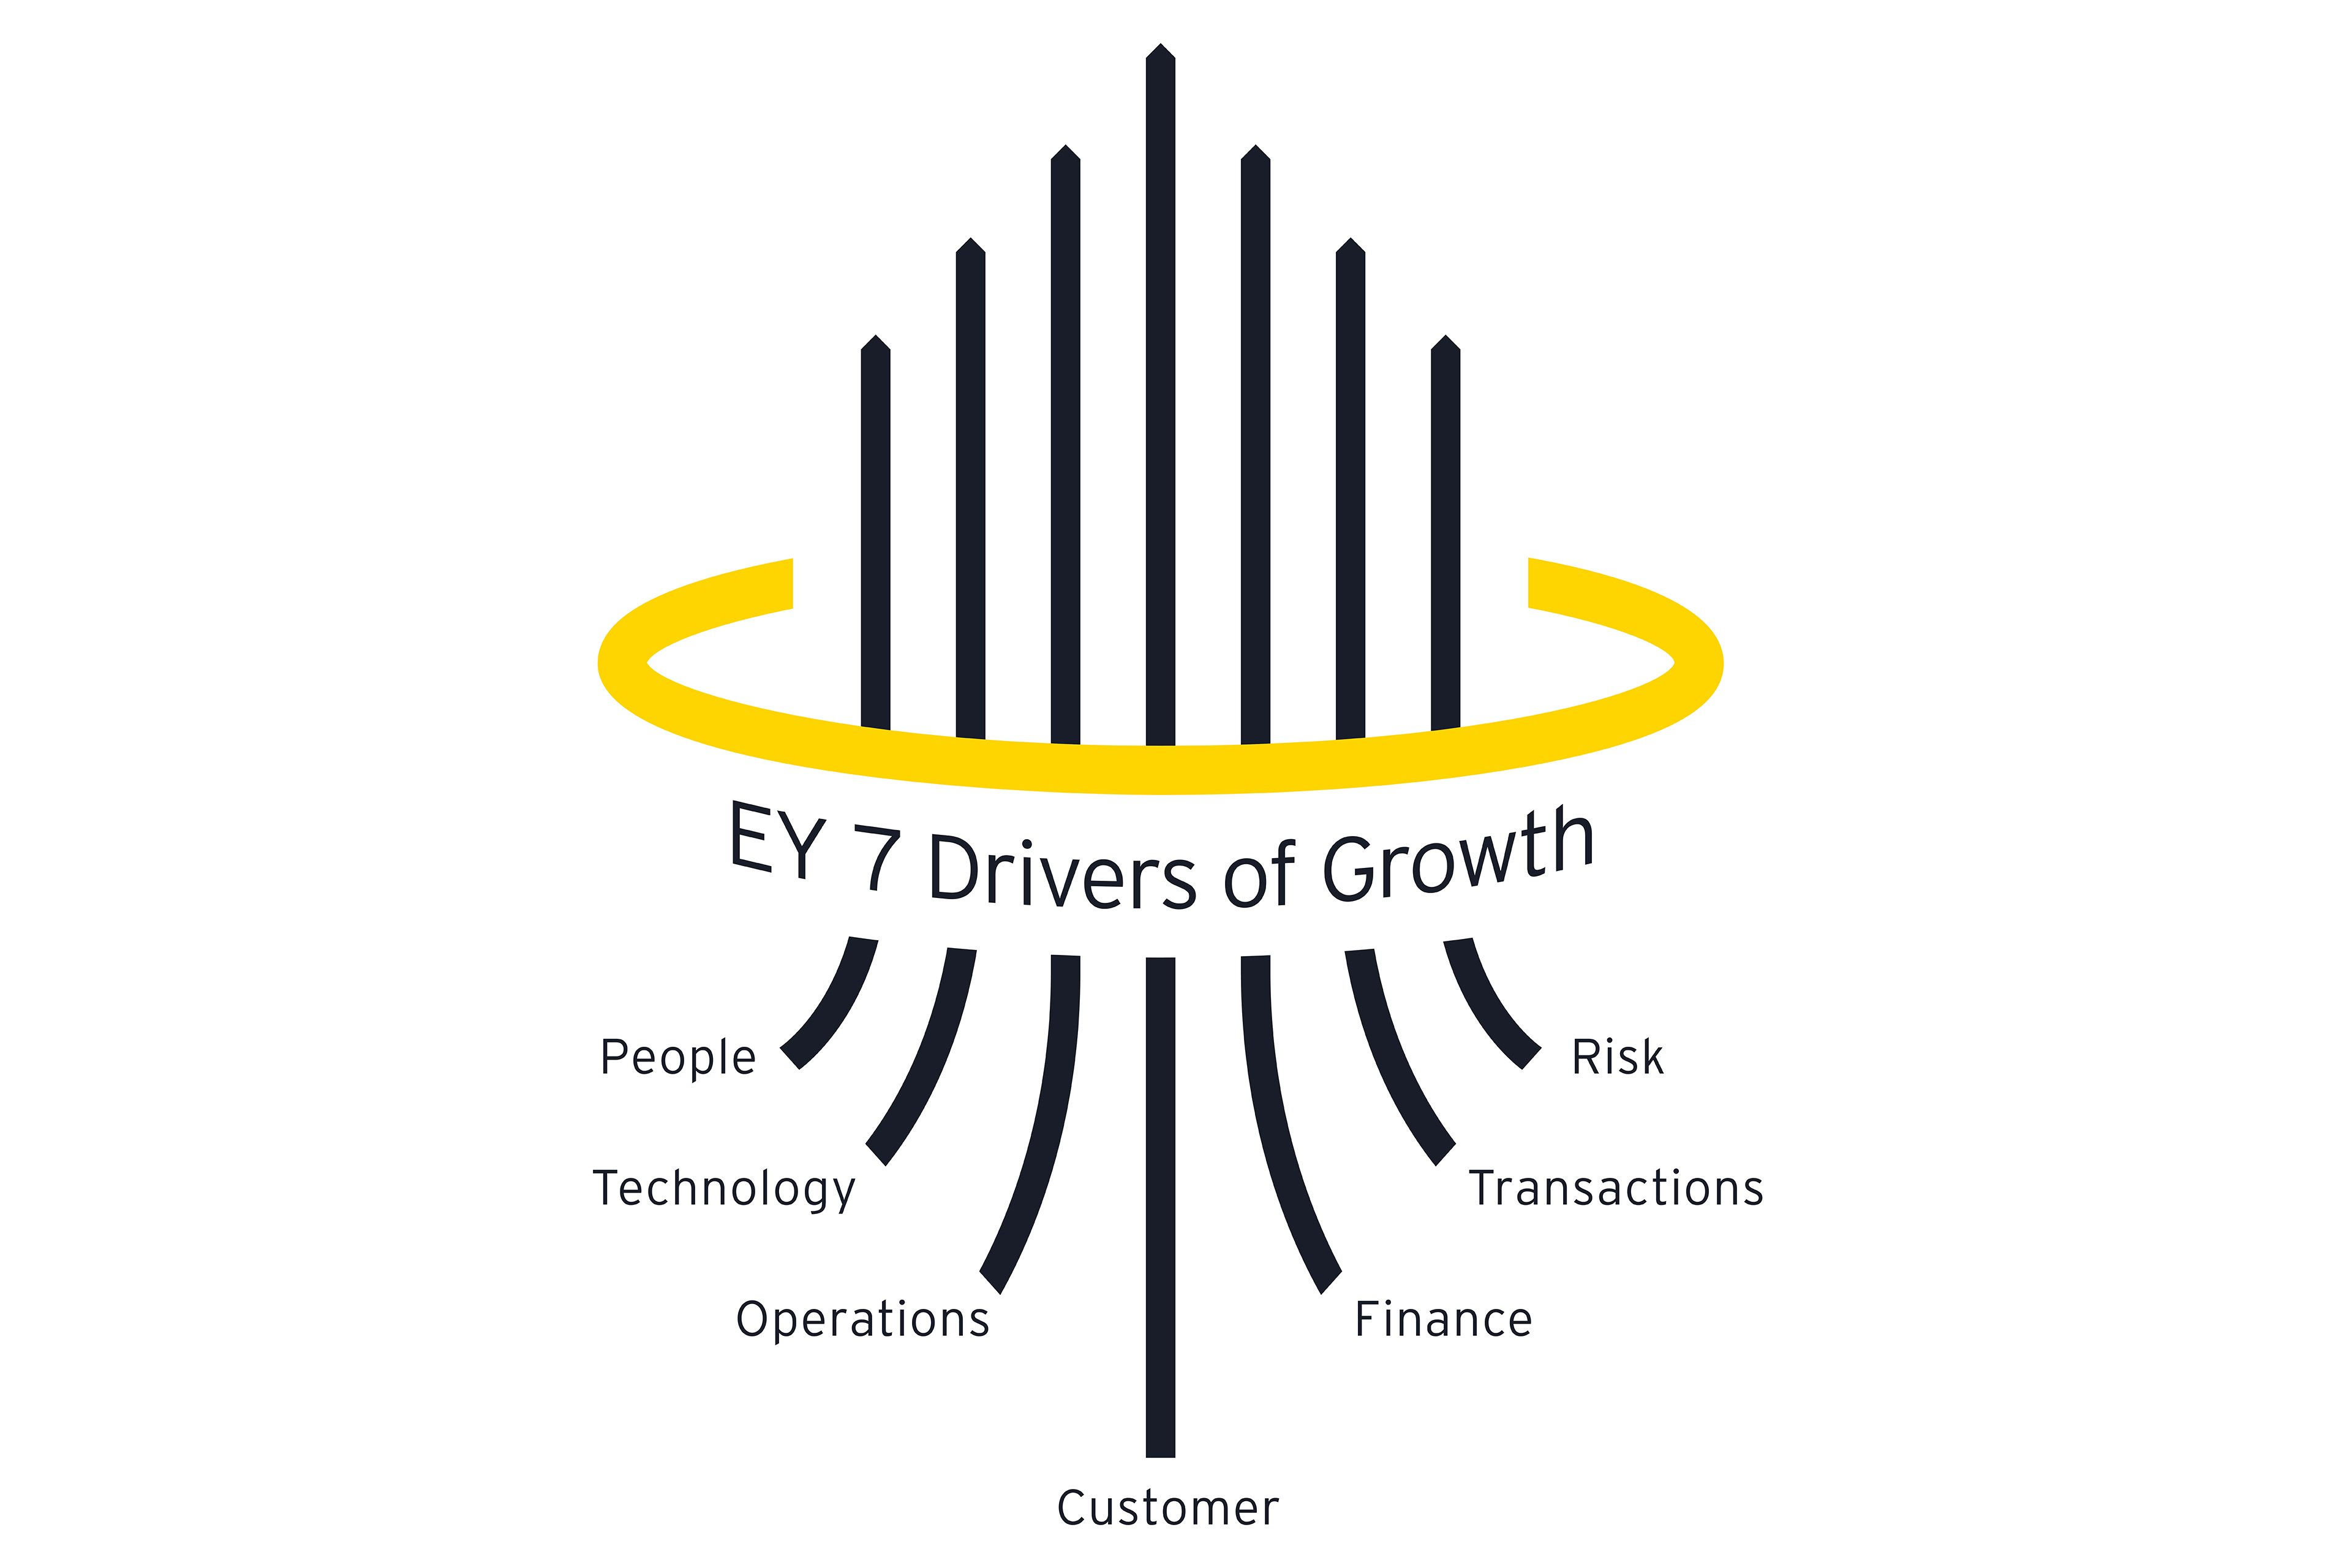 EY 7 Drivers of Growth